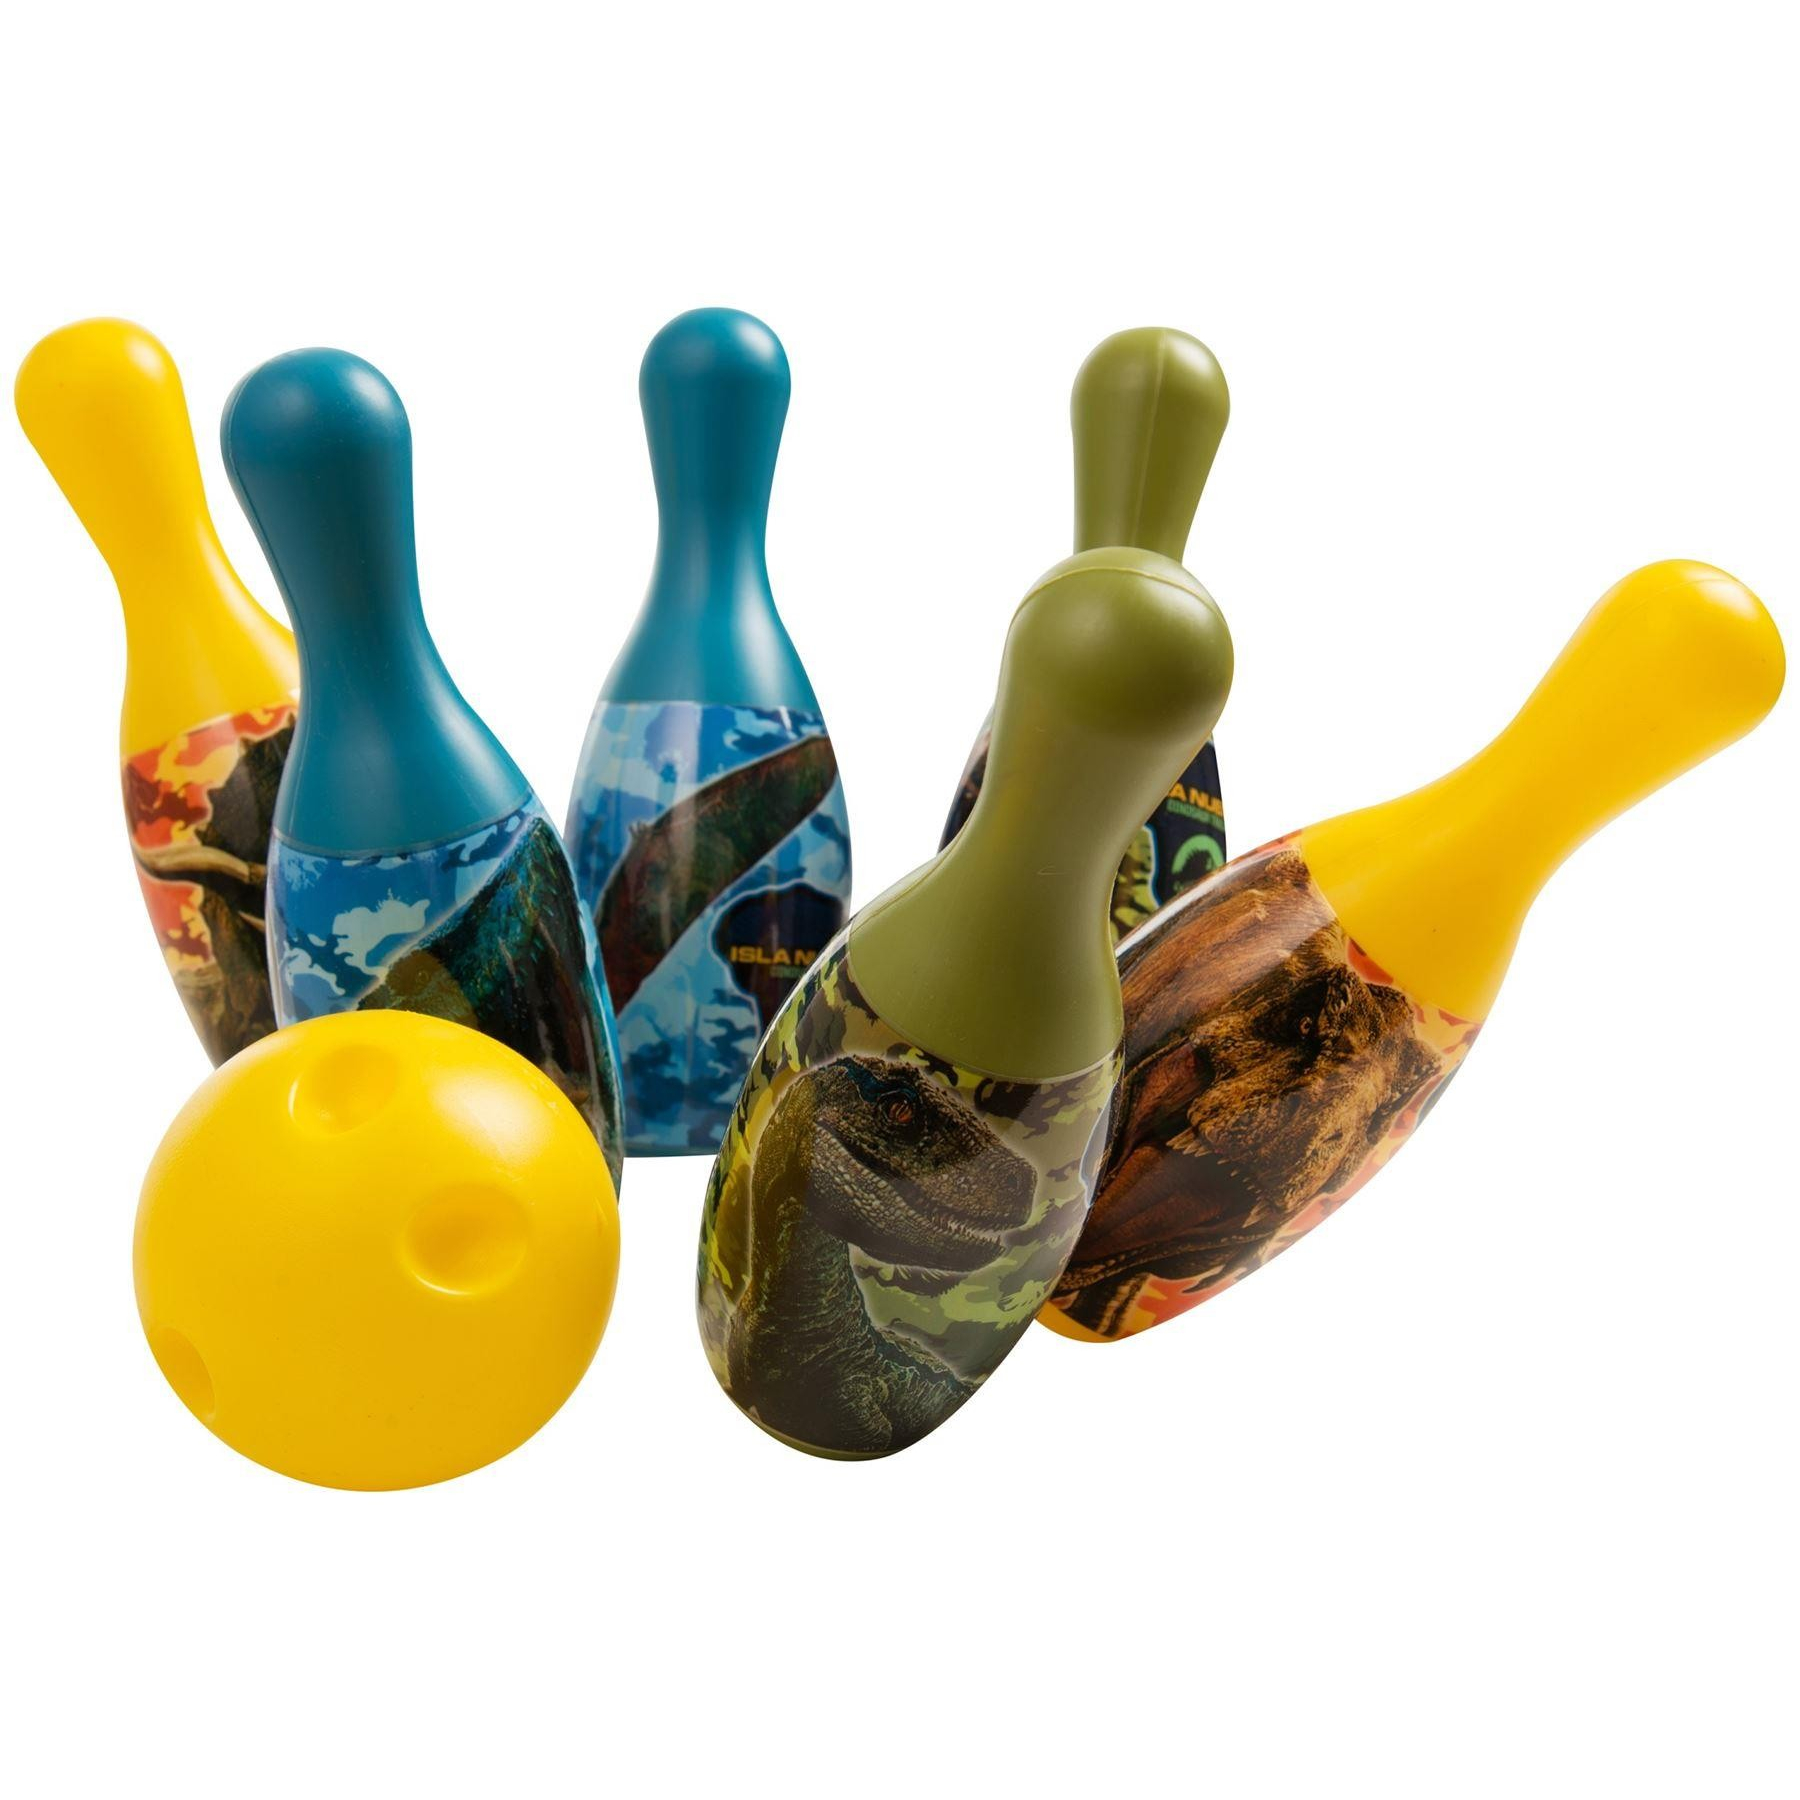 Jurassic World Dinosaur Bowling Pin Party Indoor Outdoor Family Play Set